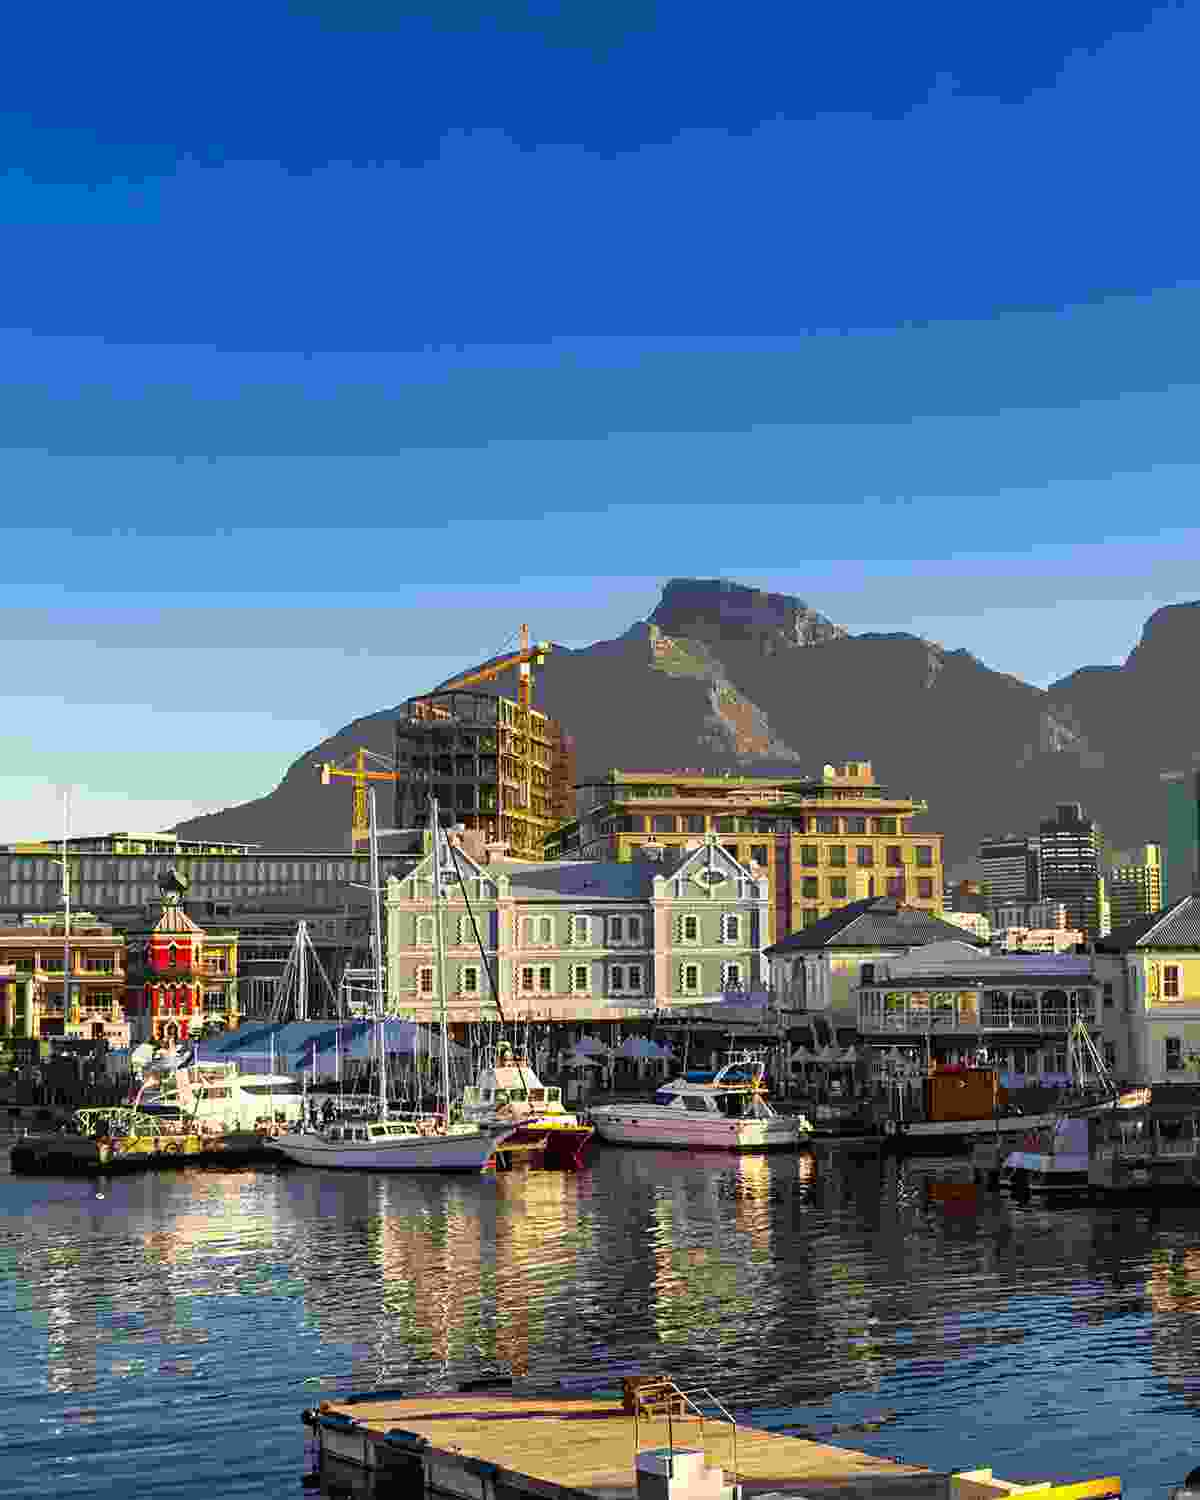 Paul Theroux's Dark Star Safari journey took him overland from Cairo to Cape Town, pictured (Shutterstock)